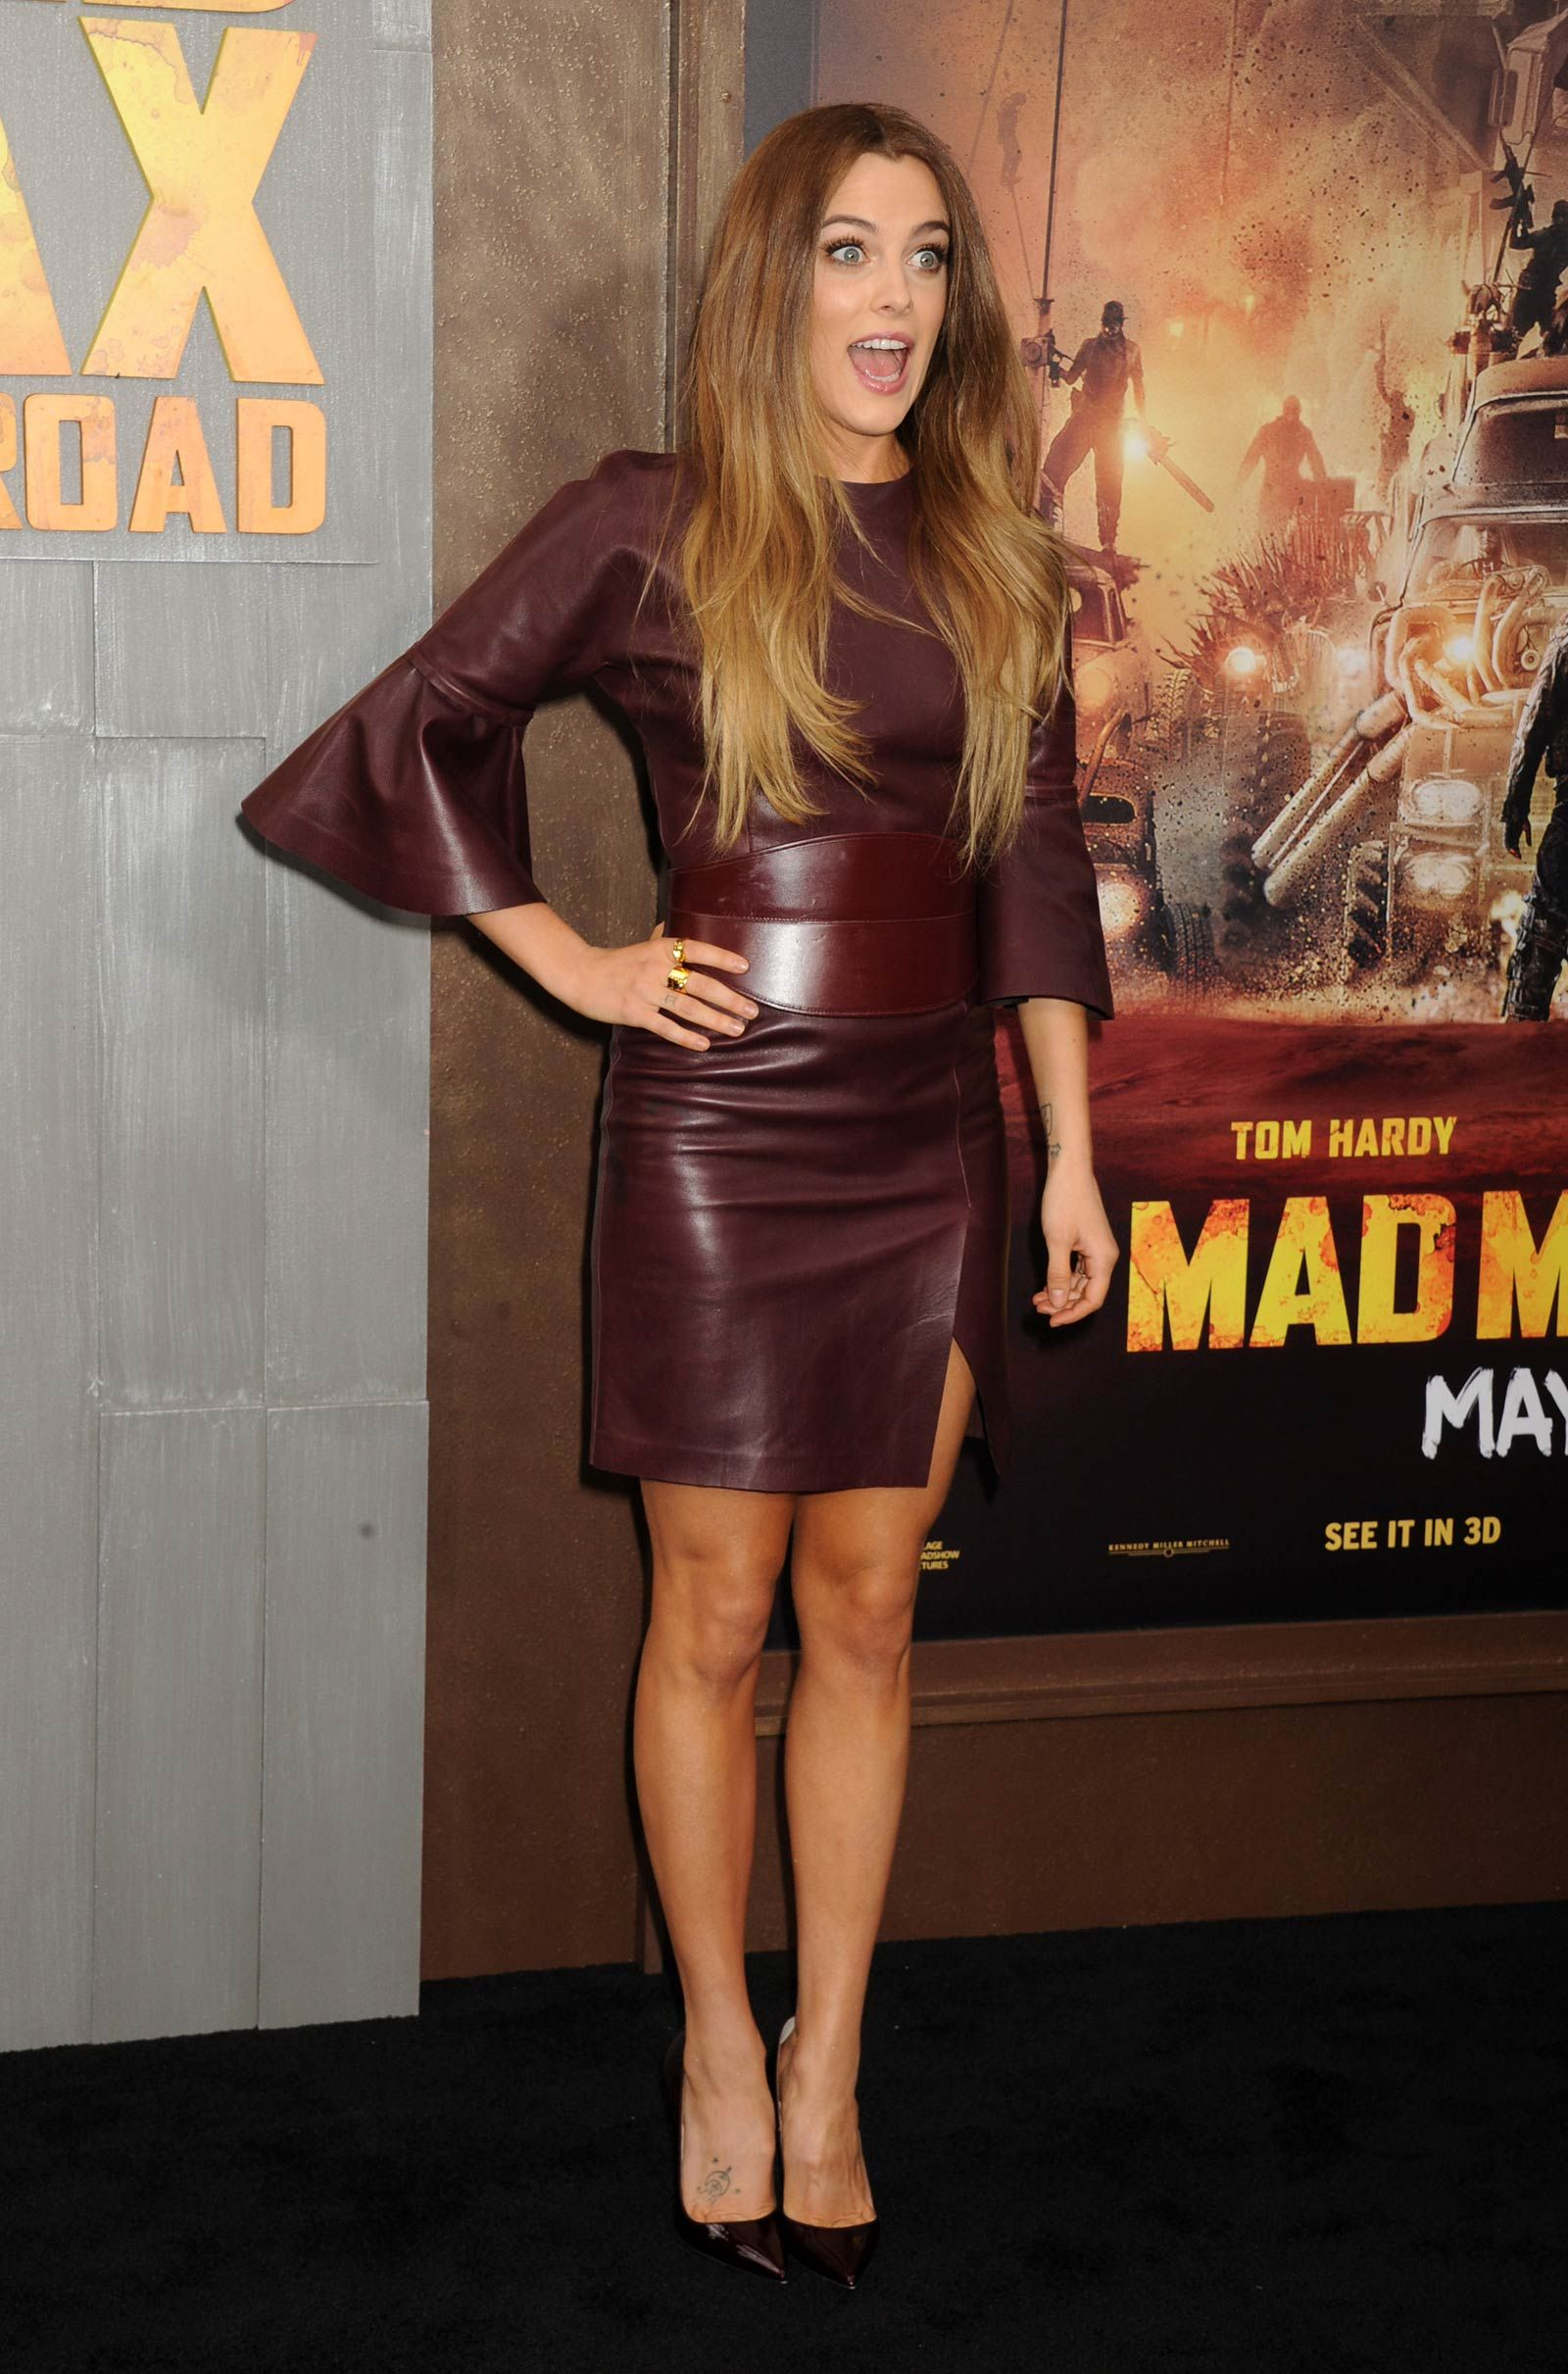 Elvis Presley's granddaughter to join Mad Max 4 cast? Riley Keough ...